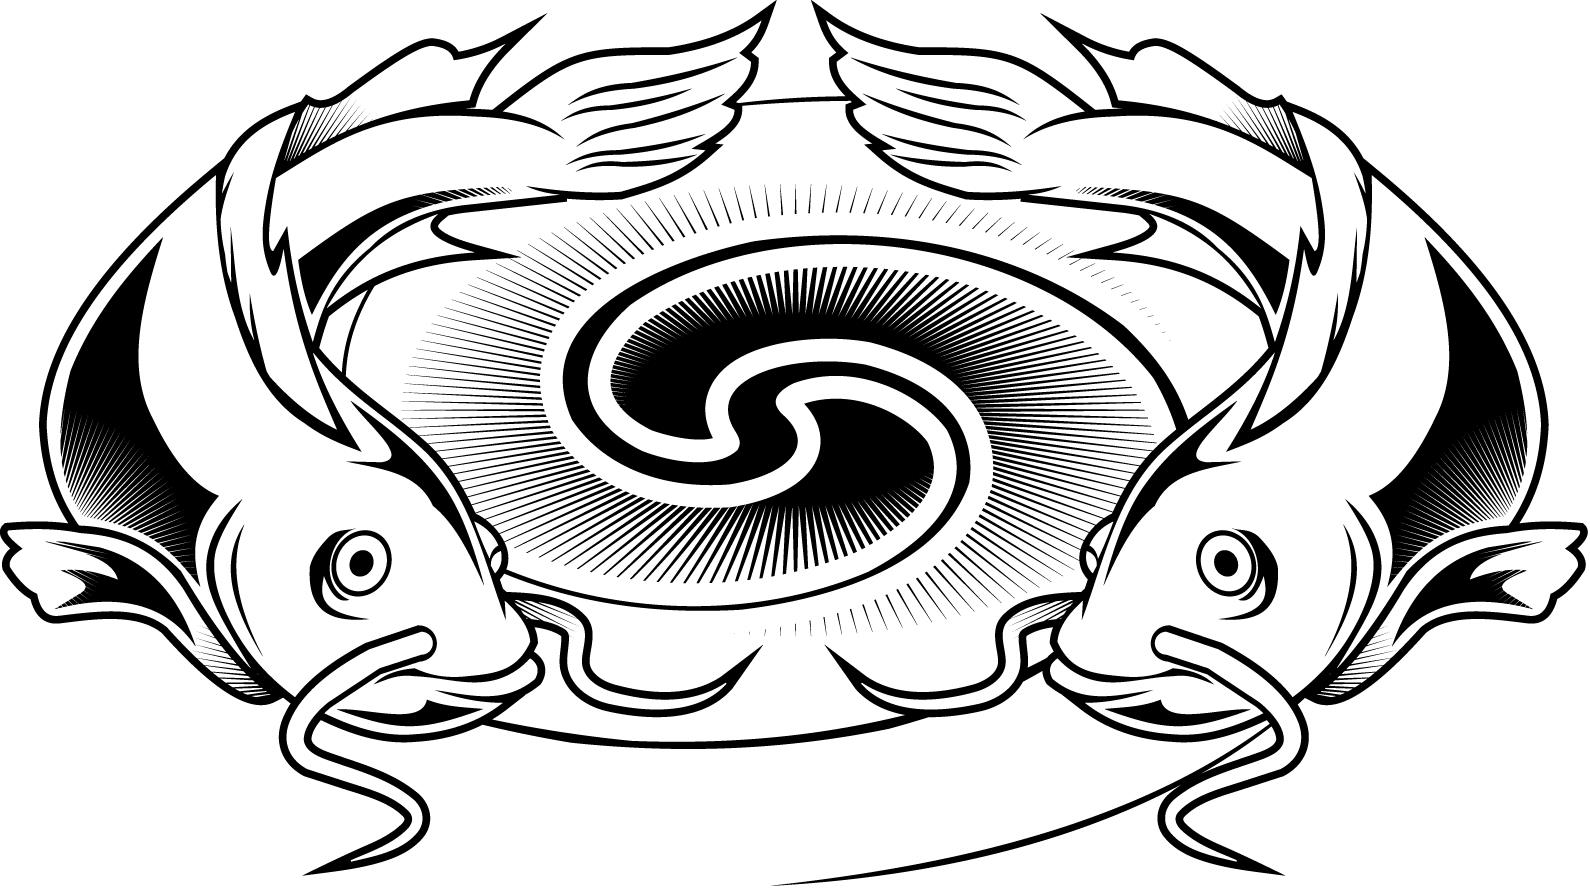 1590x888 Colouring Pages Of A Catfish Tattoo Design For Kids